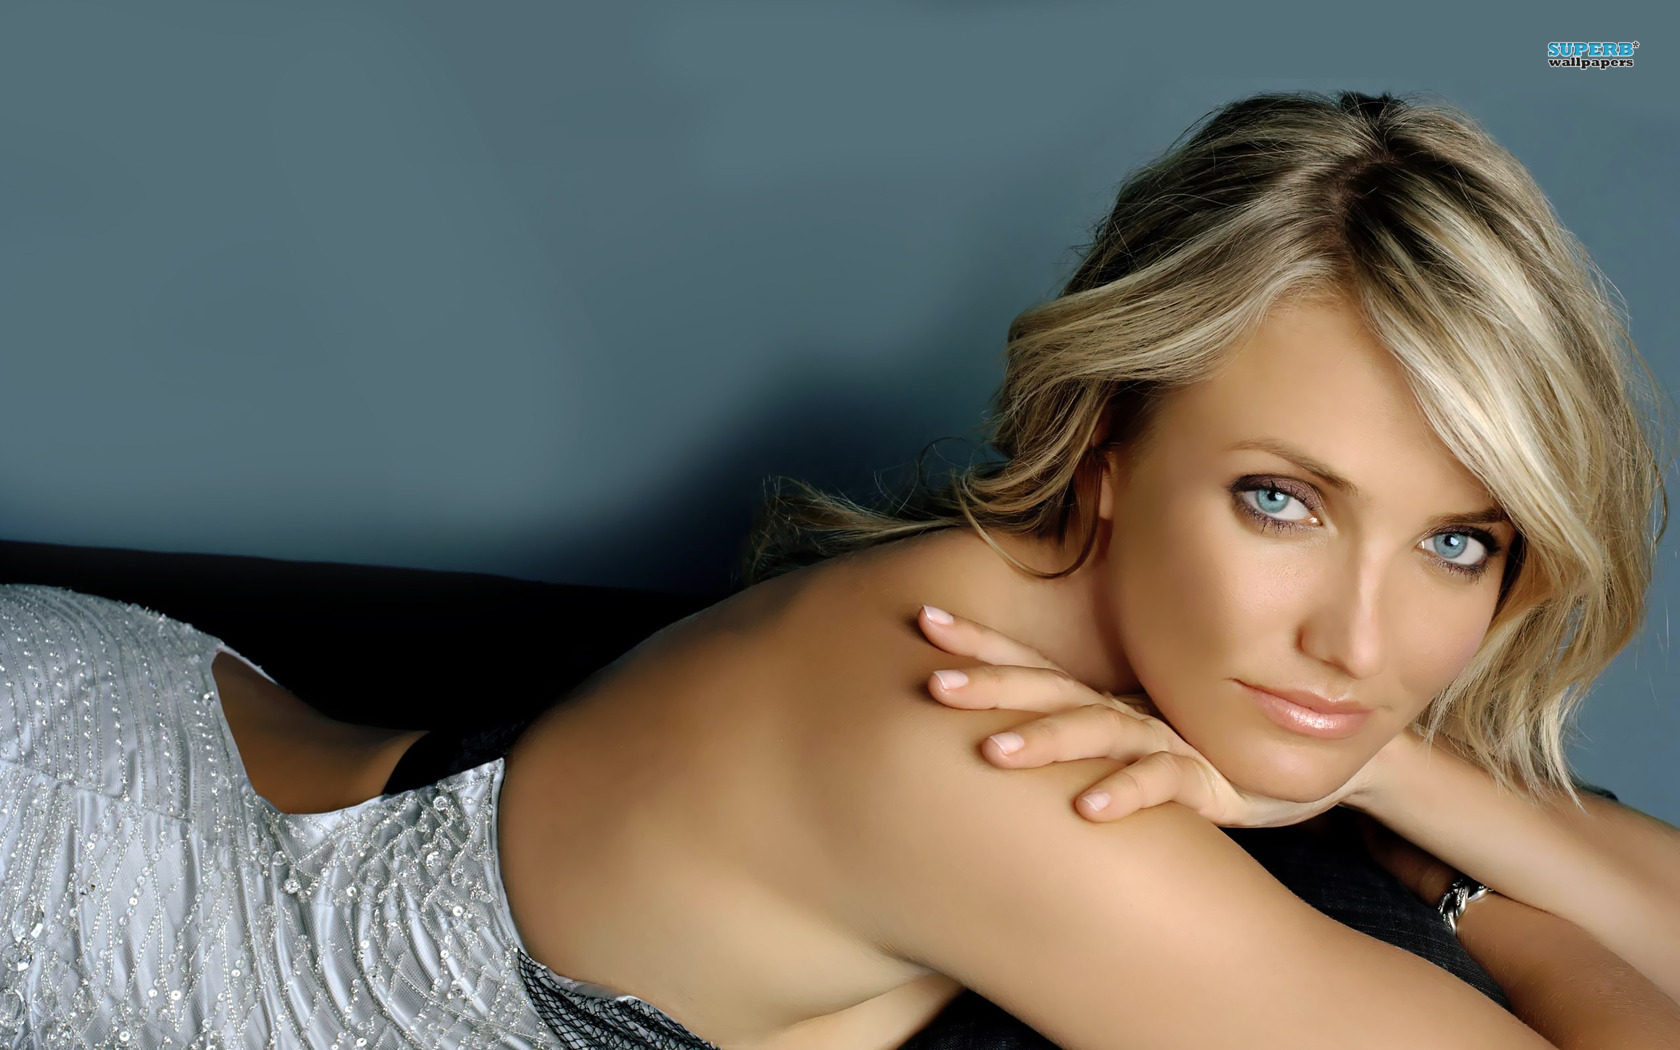 Cameron Diaz Wallpaper 39626